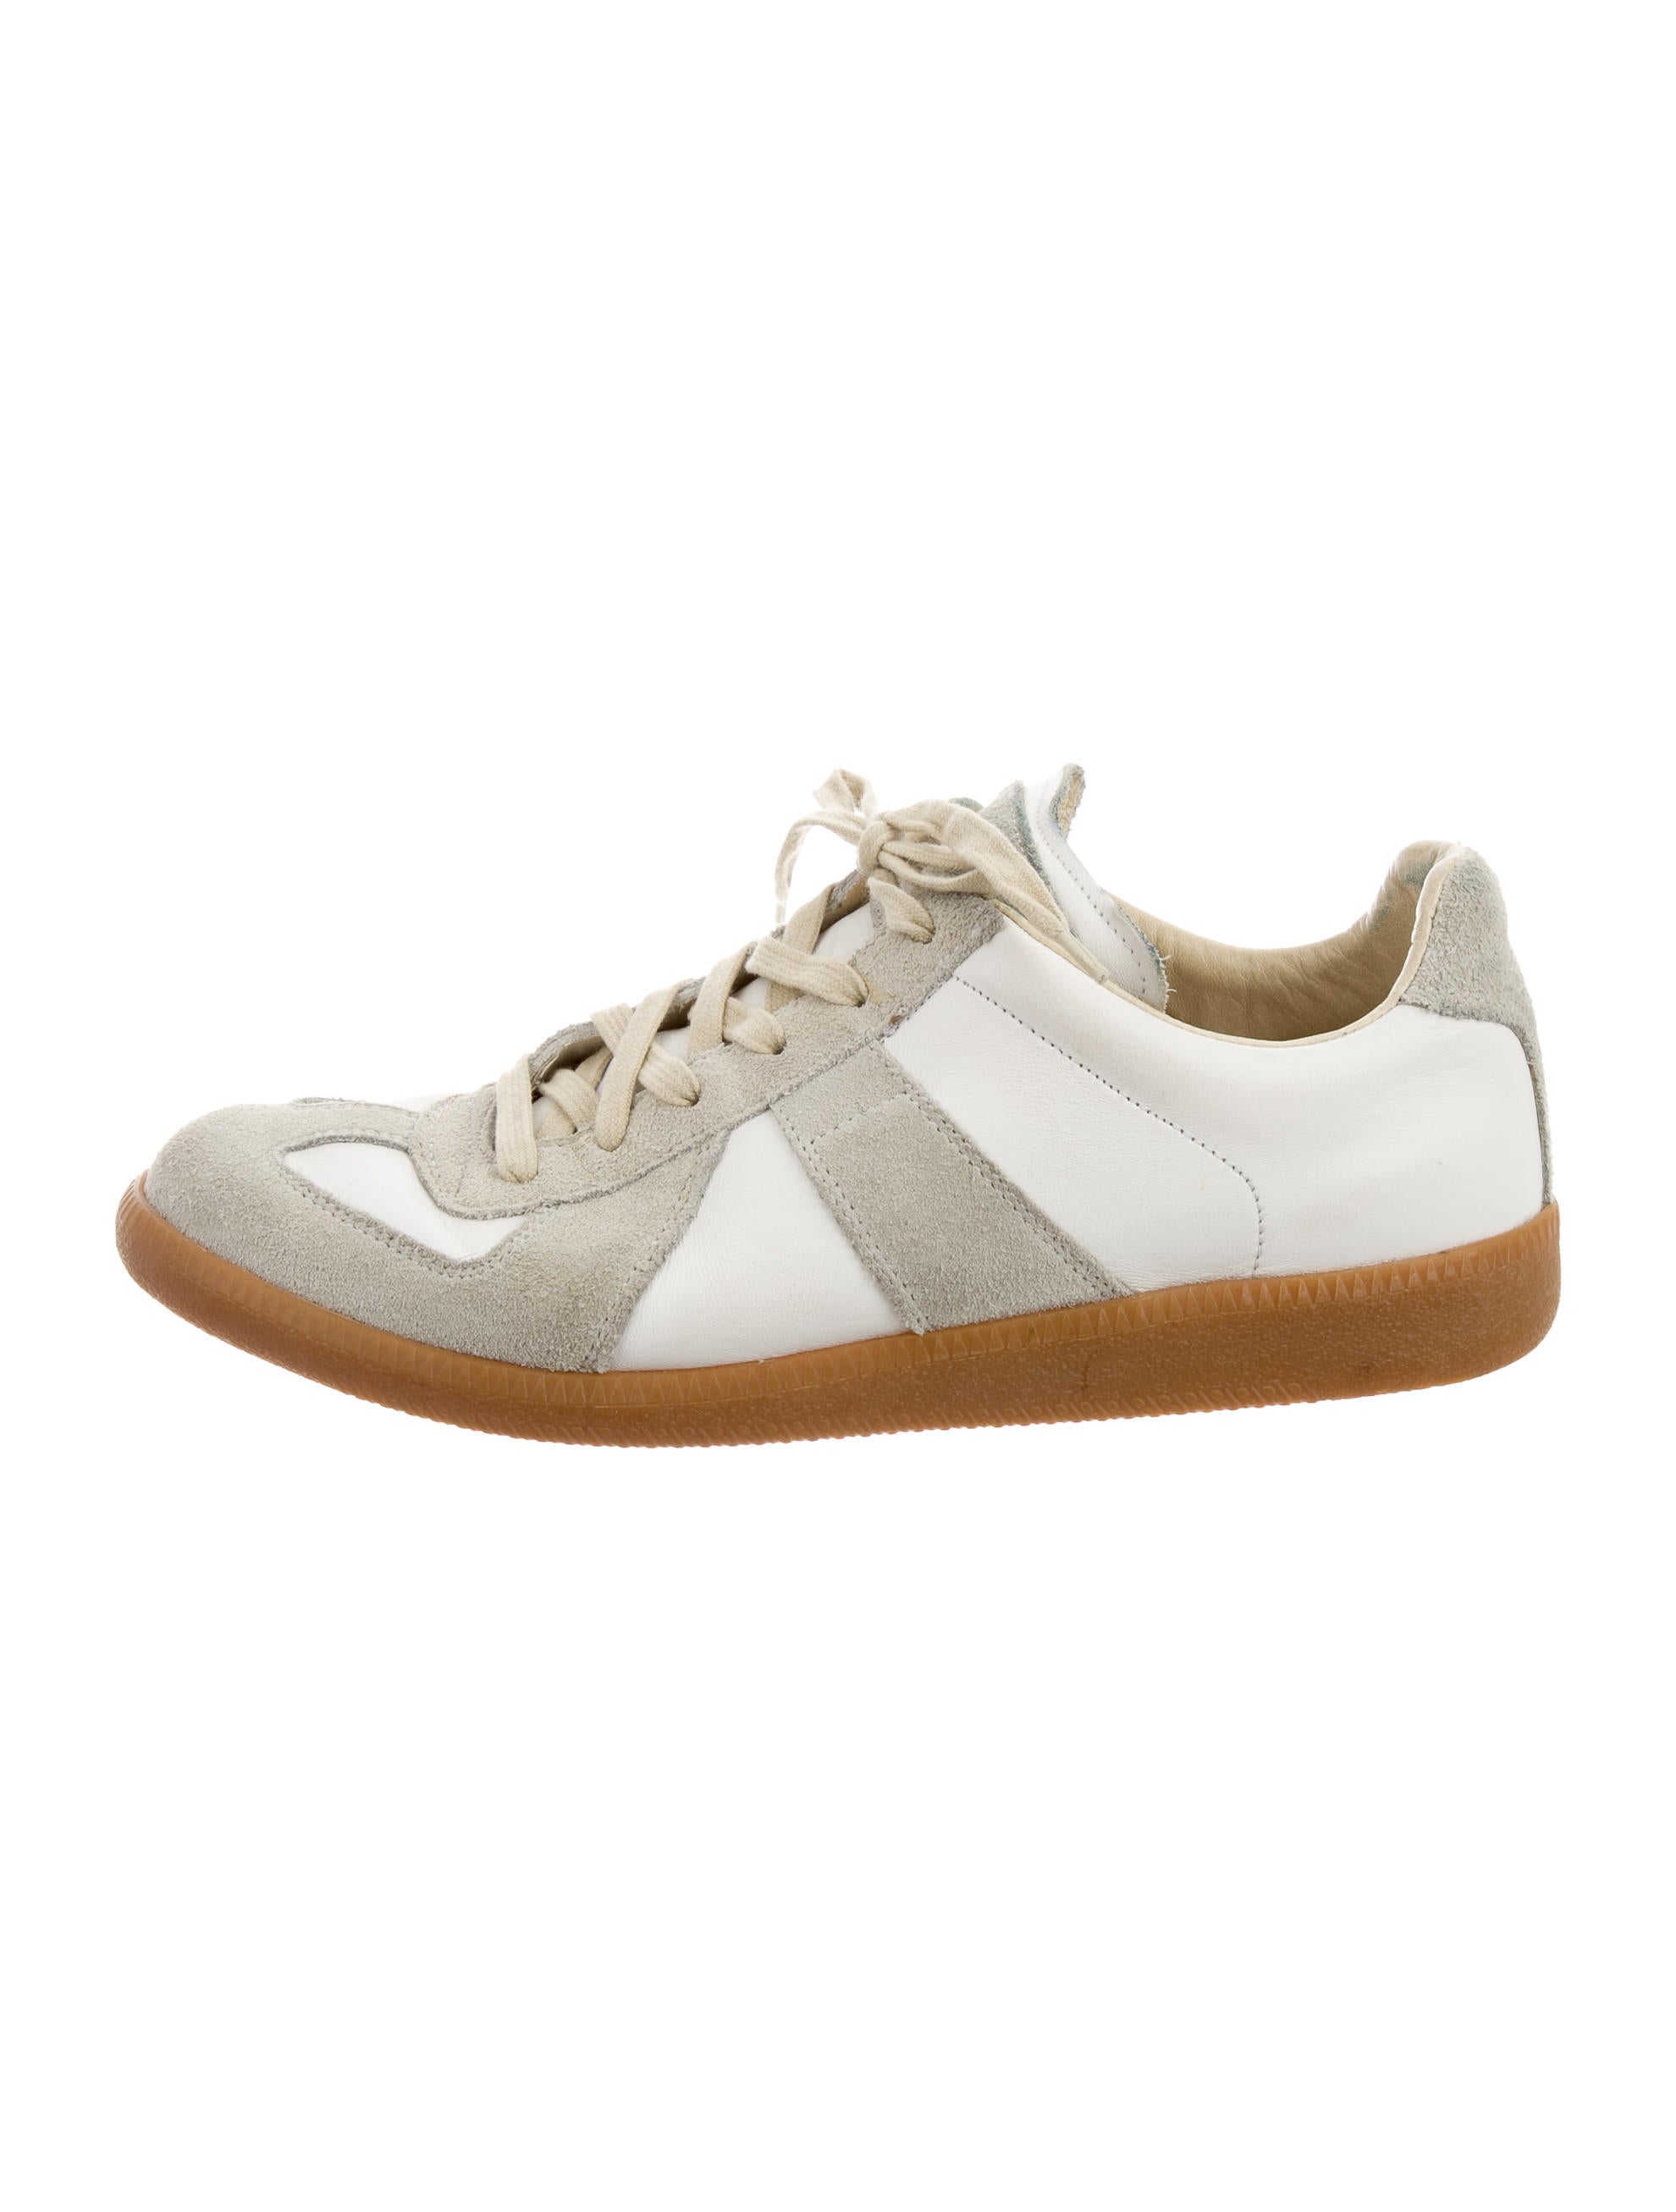 Maison martin margiela replica low top sneakers shoes for Replica maison martin margiela